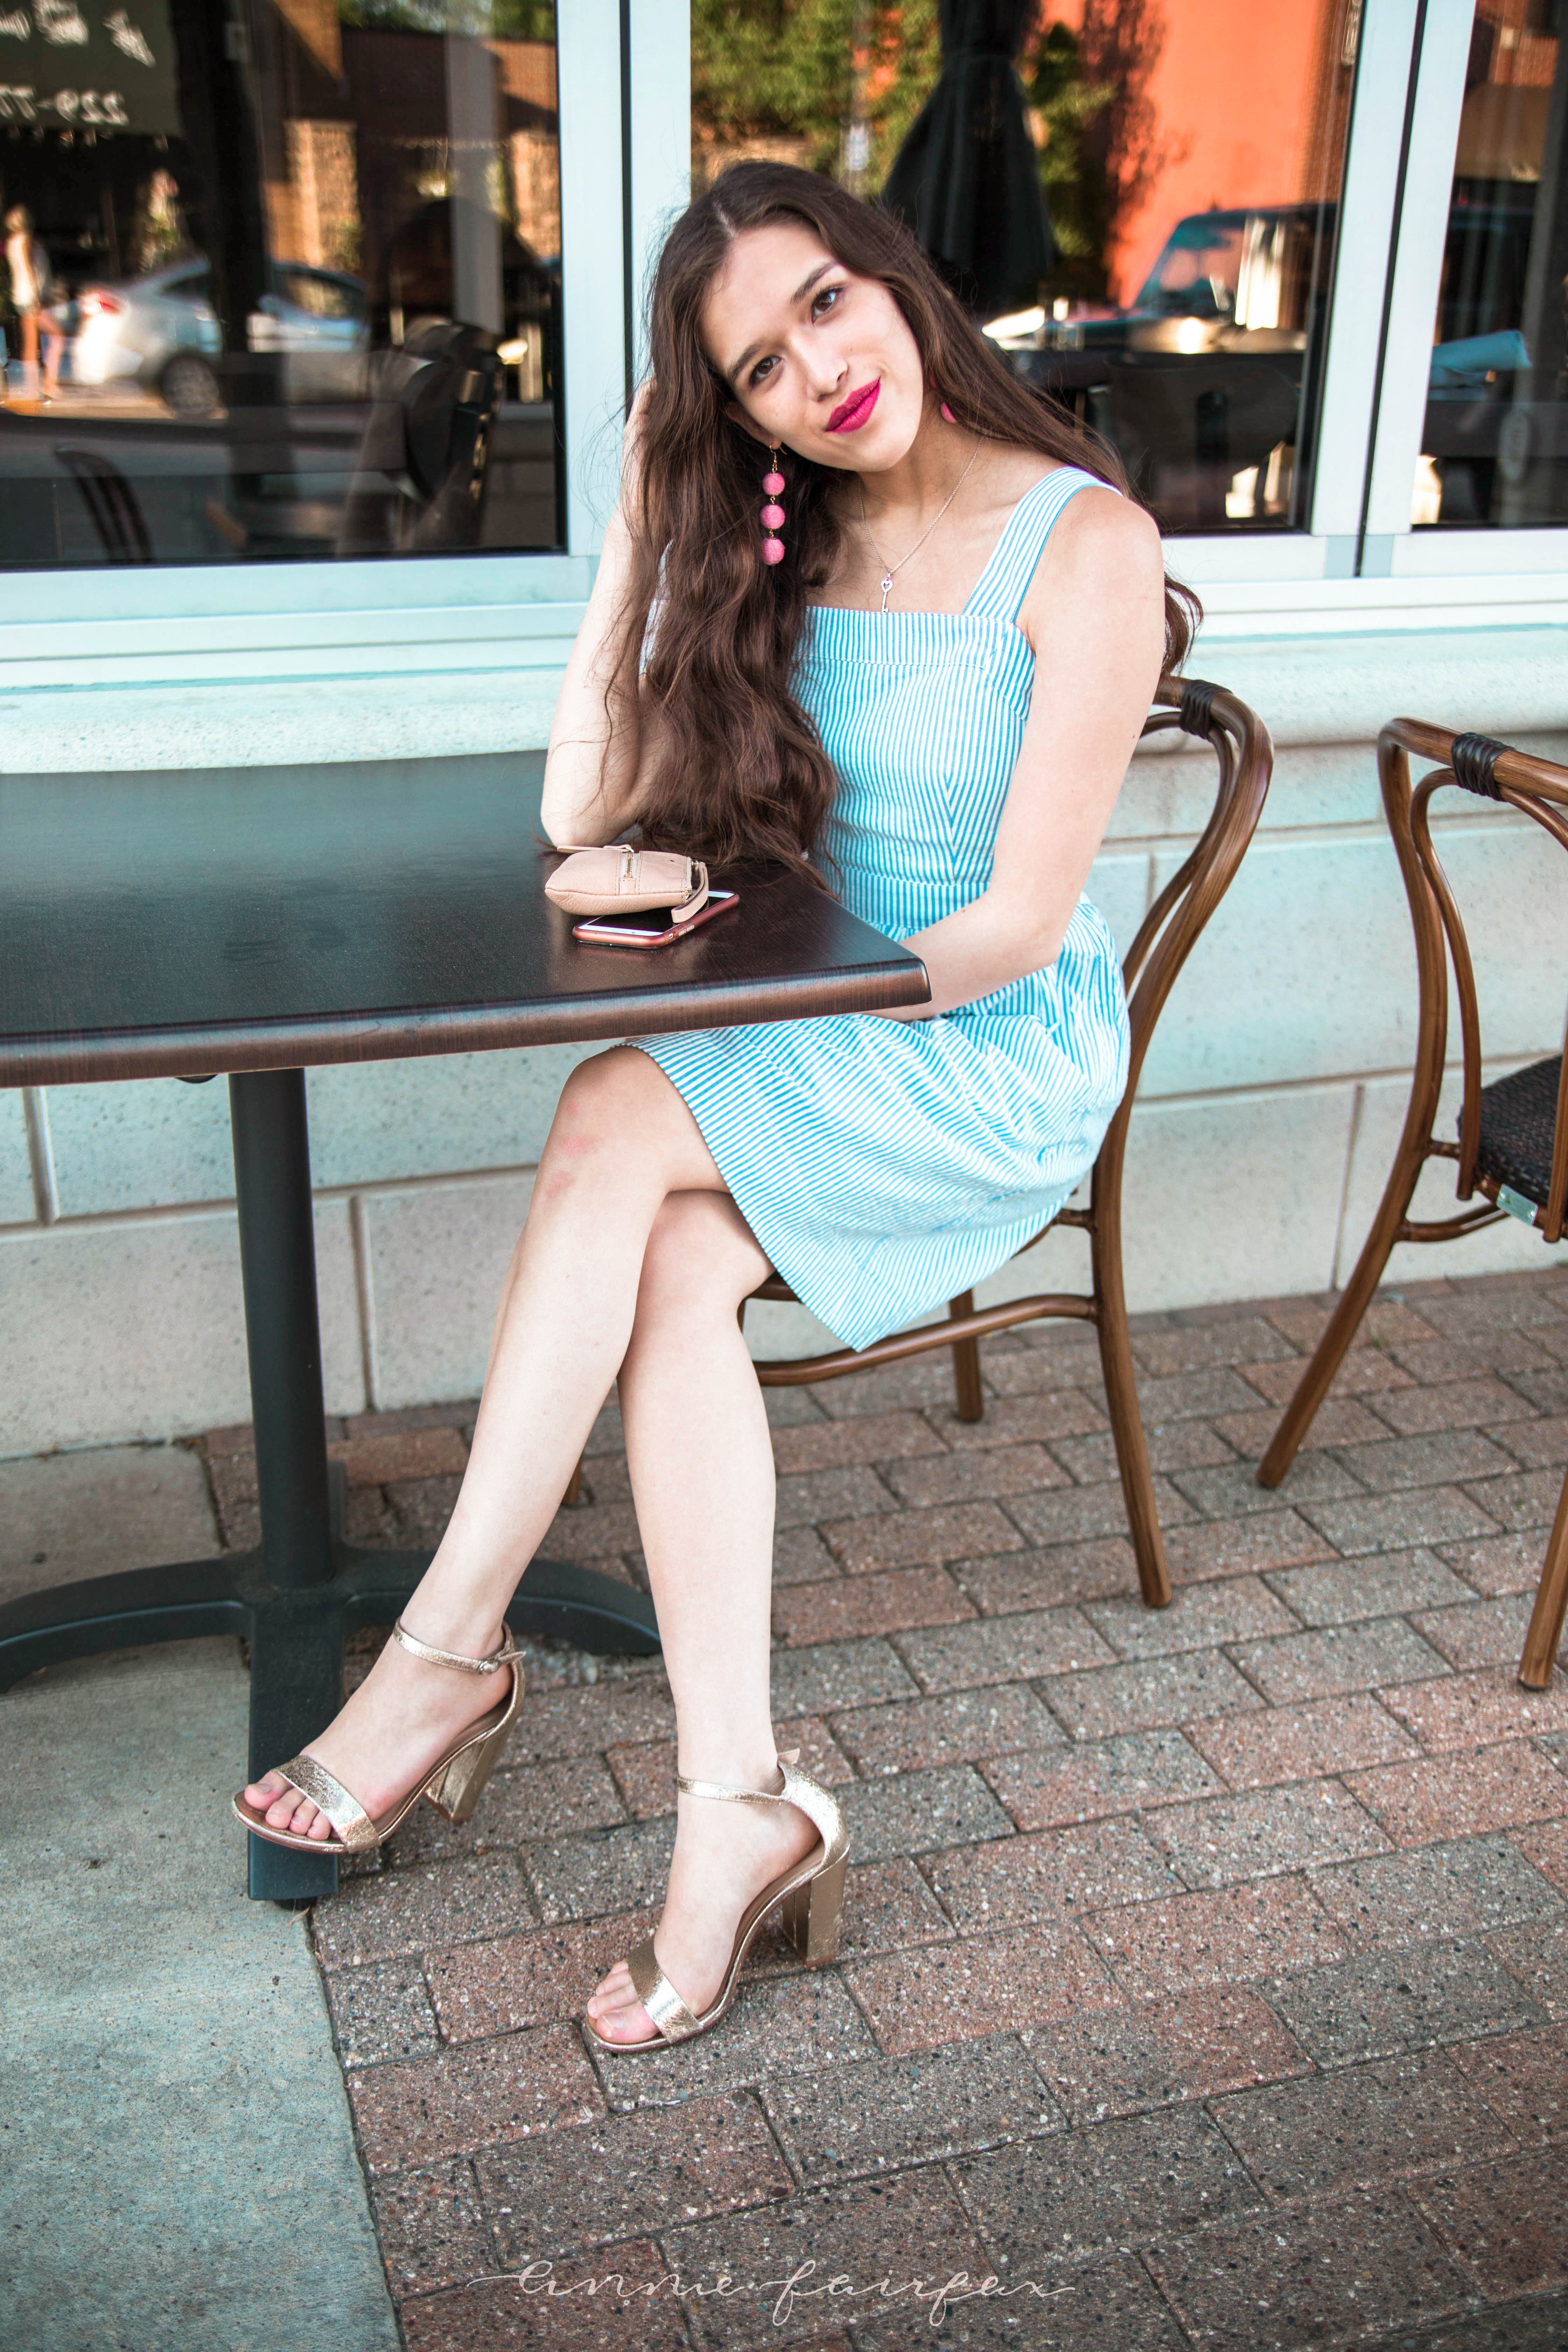 j. crew jcrew factory blue and white seersucker minidress fit and flare dress with pockets above the knee gold metallic chunky heels long brown wavy hair girl standing on sidewalk preppy style flattering for any body type sitting in chair at cafe  with phone summer style inspiration warm weather clothing for teens women classic with a twist kate spade bee wristlet target style